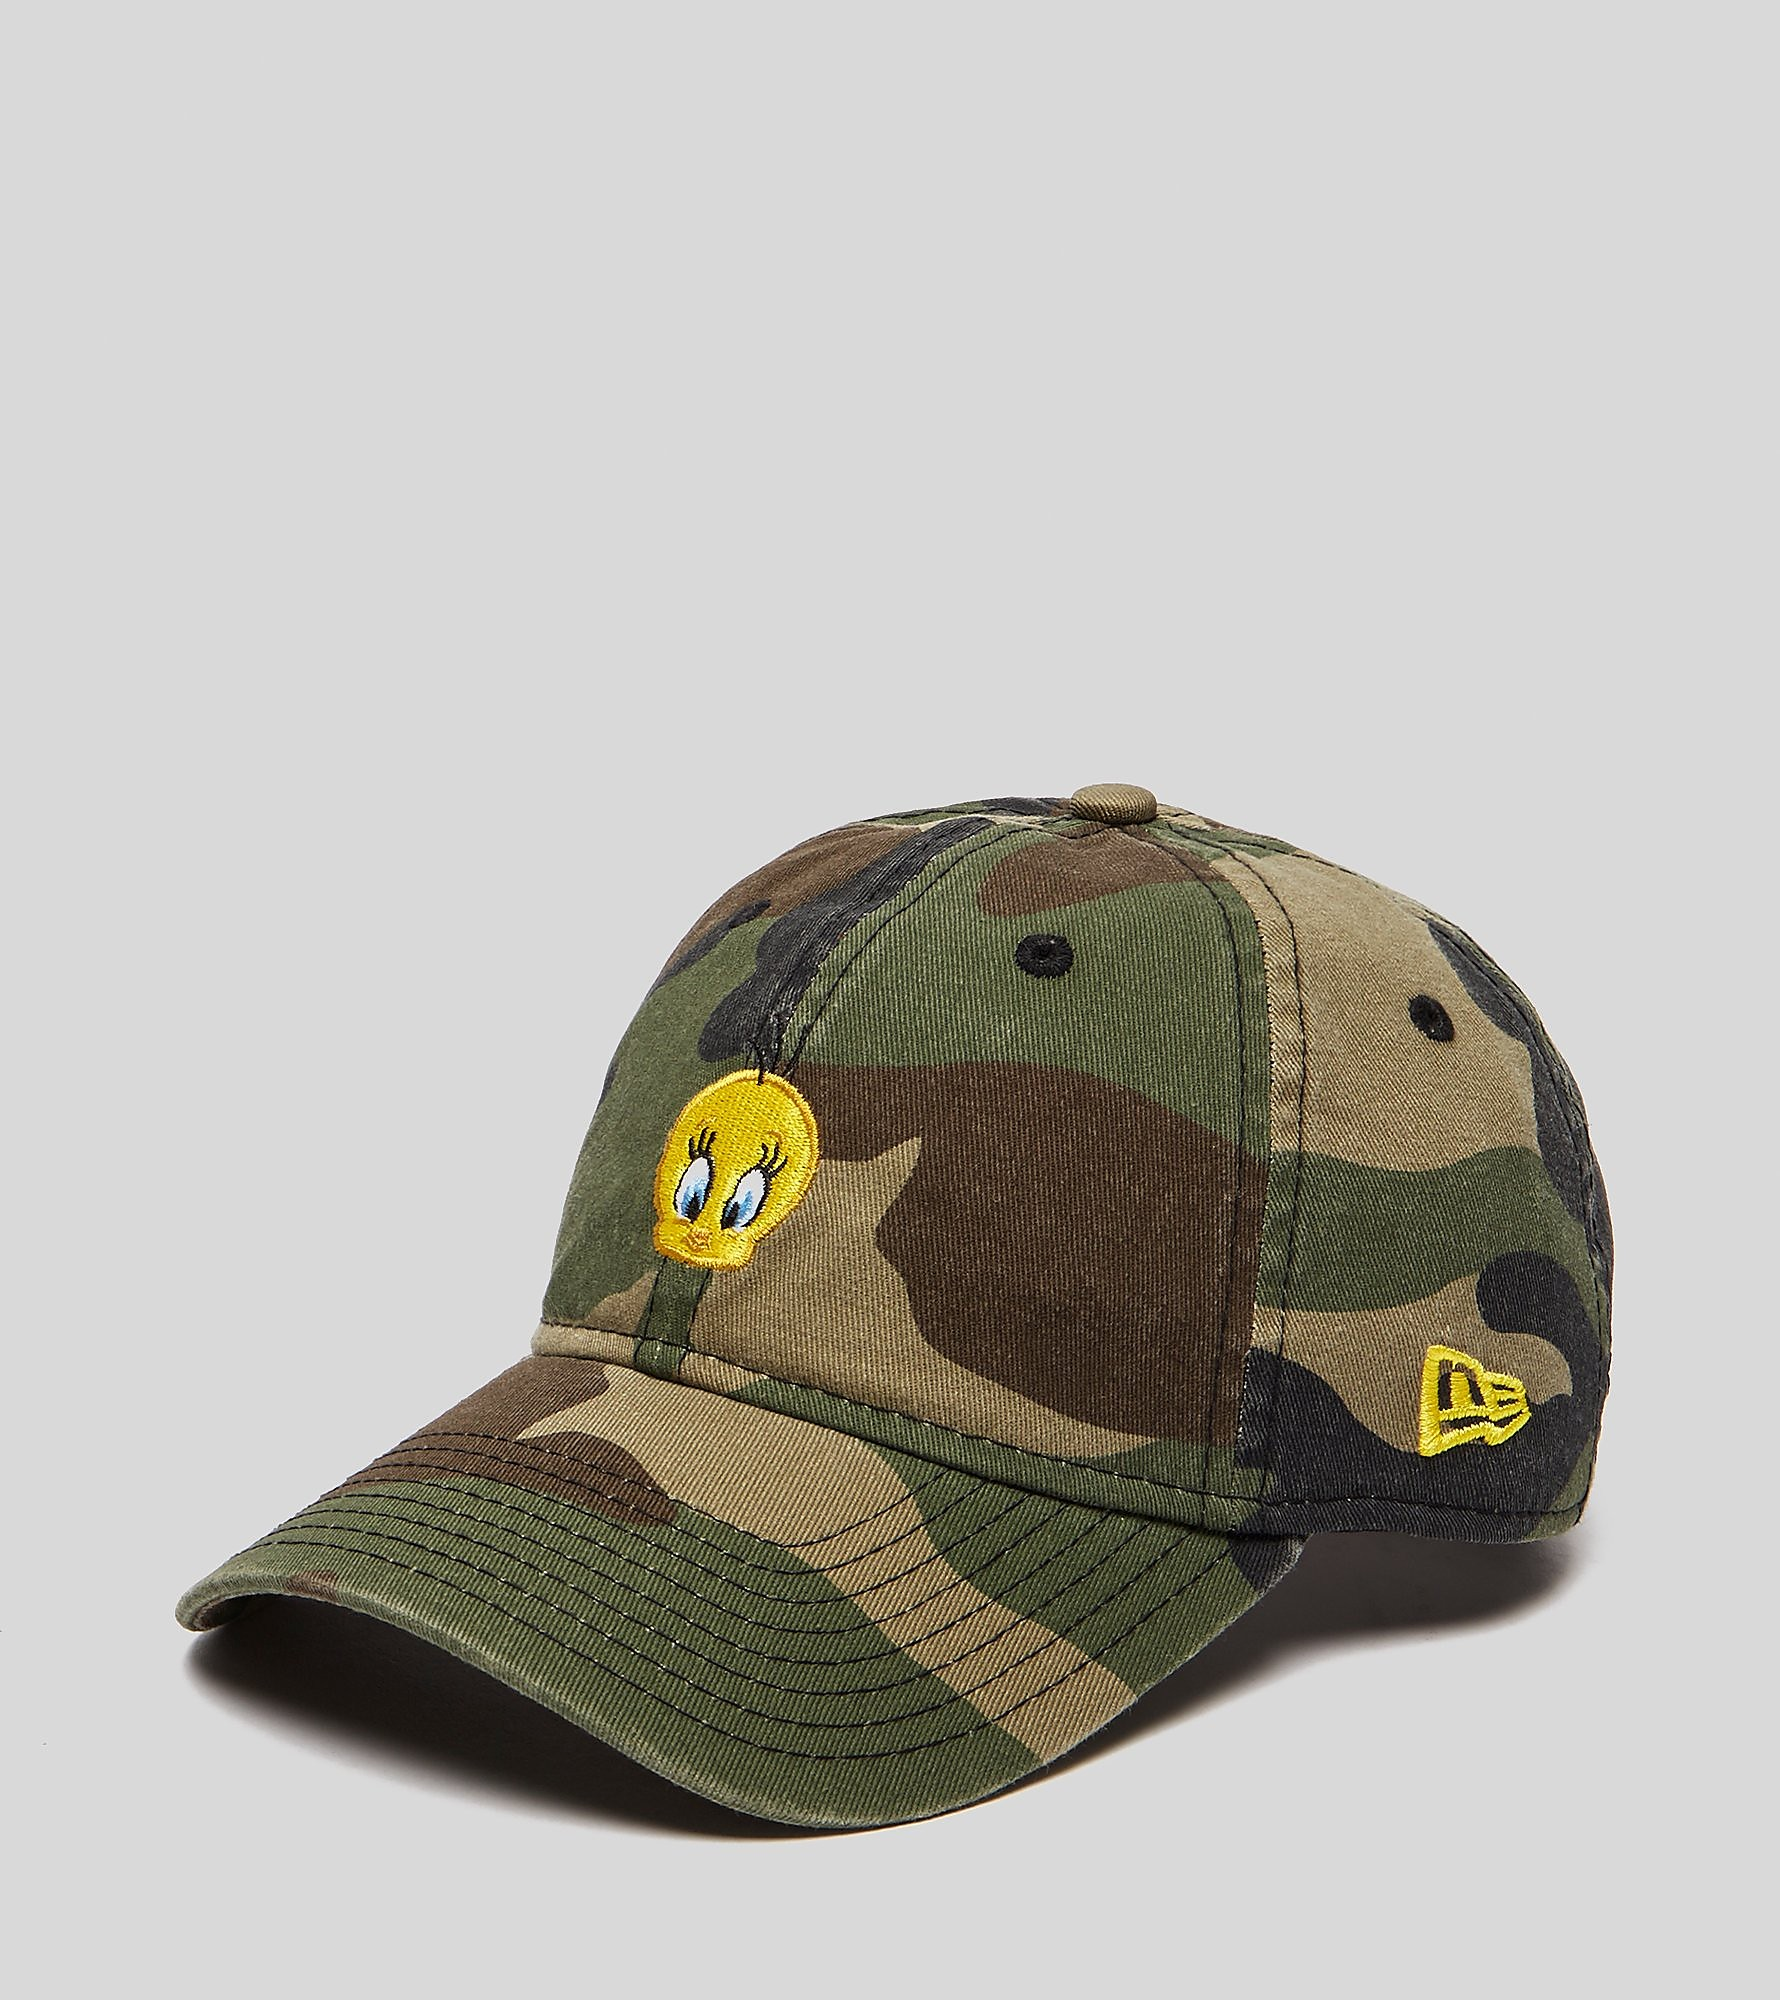 New Era 9FORTY Looney Tweety Cap - size? Exclusive